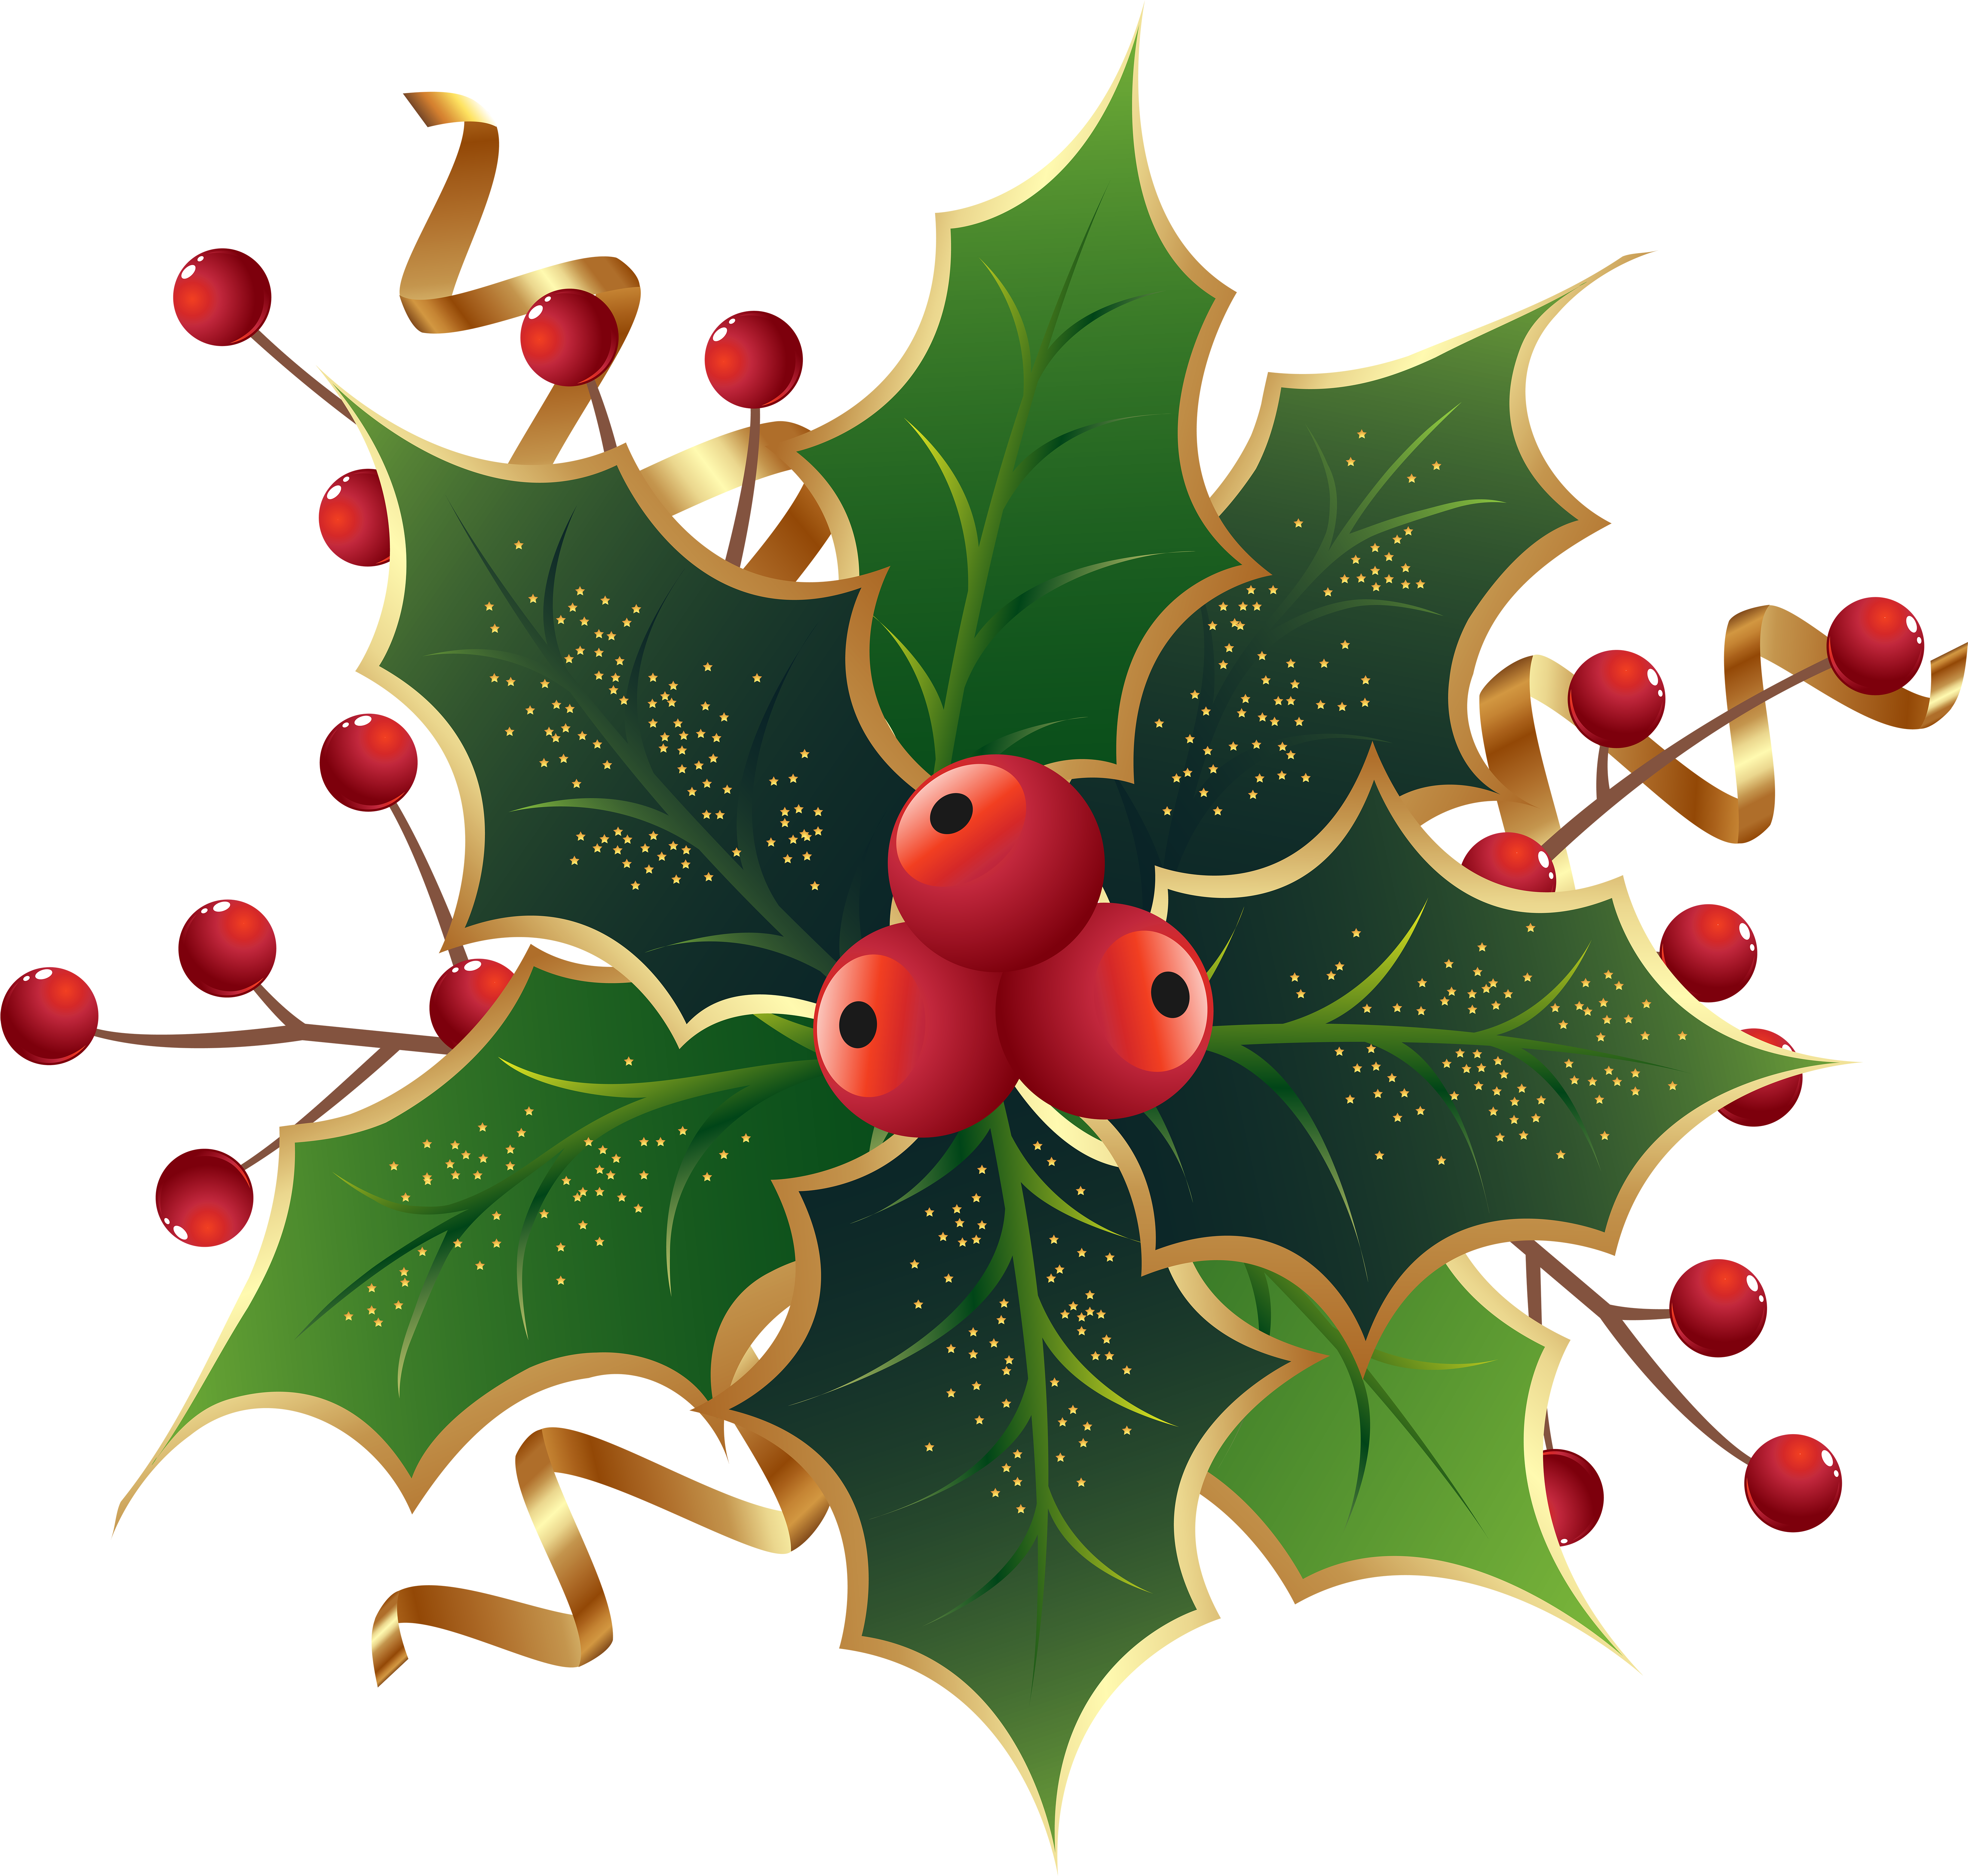 Christmas clipart holly. Pin by cherryg on